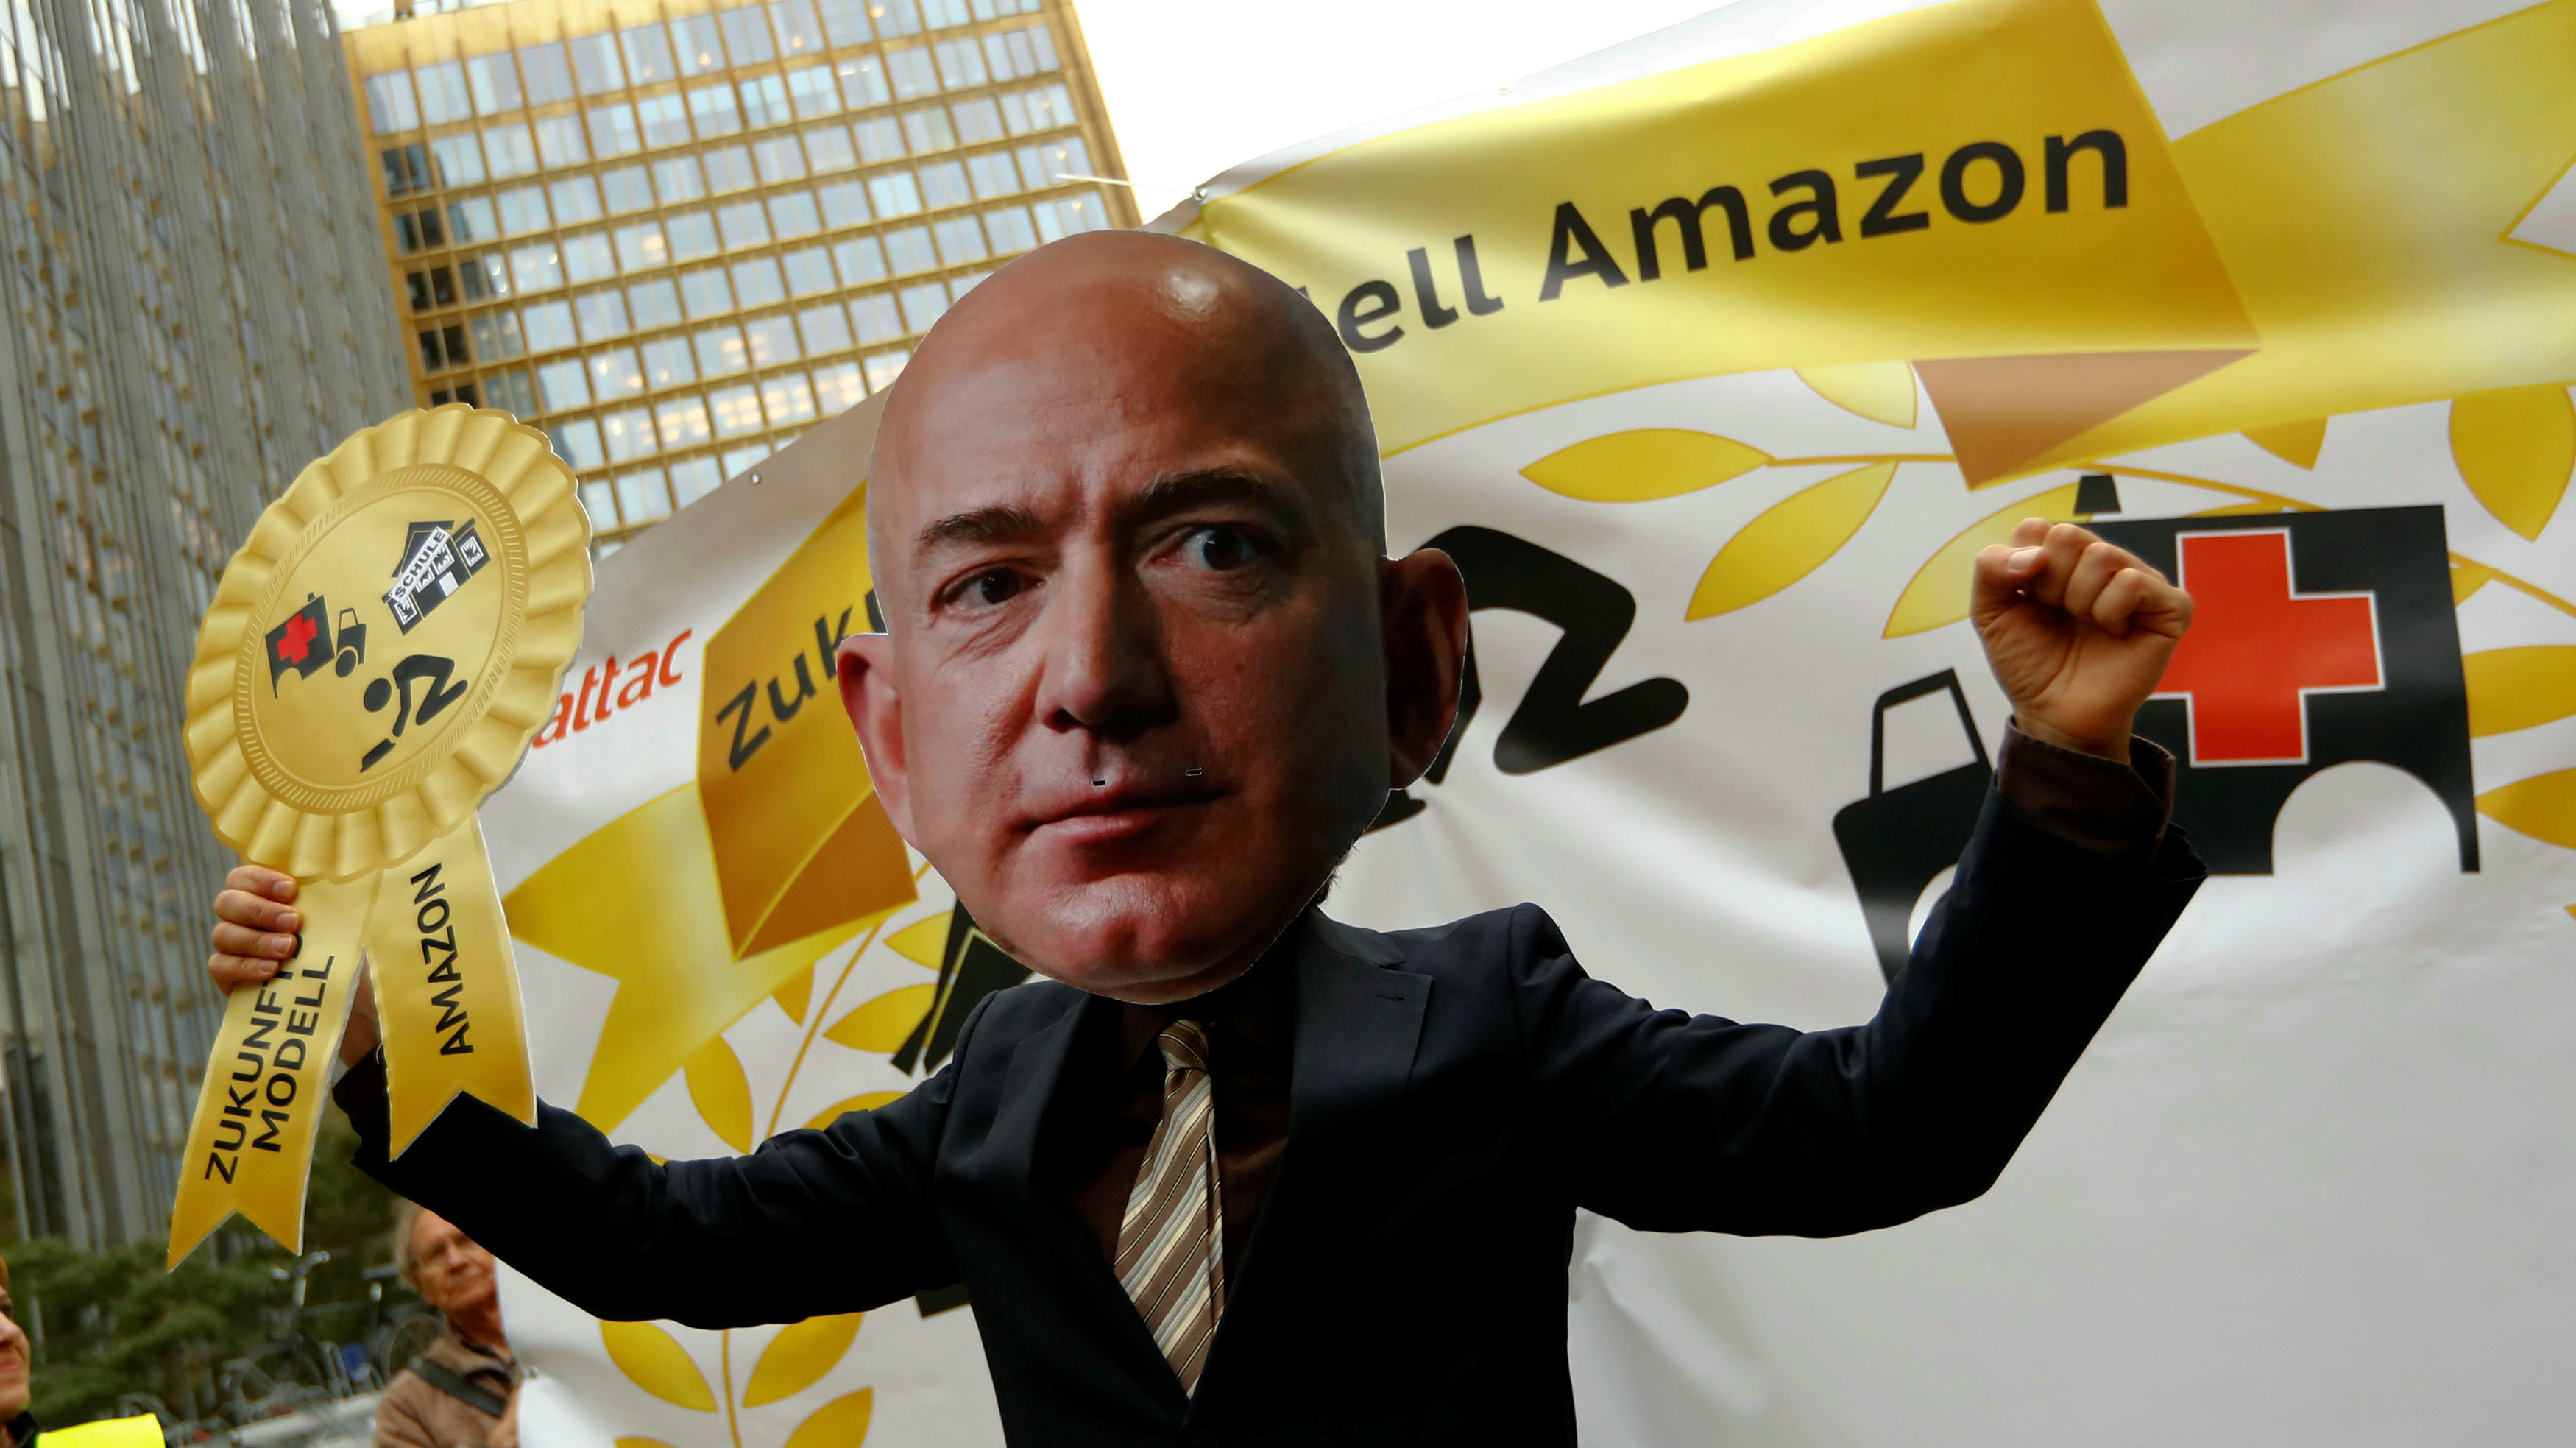 Amazon Prime Is Raising The Cost Of Its Membership By 20%